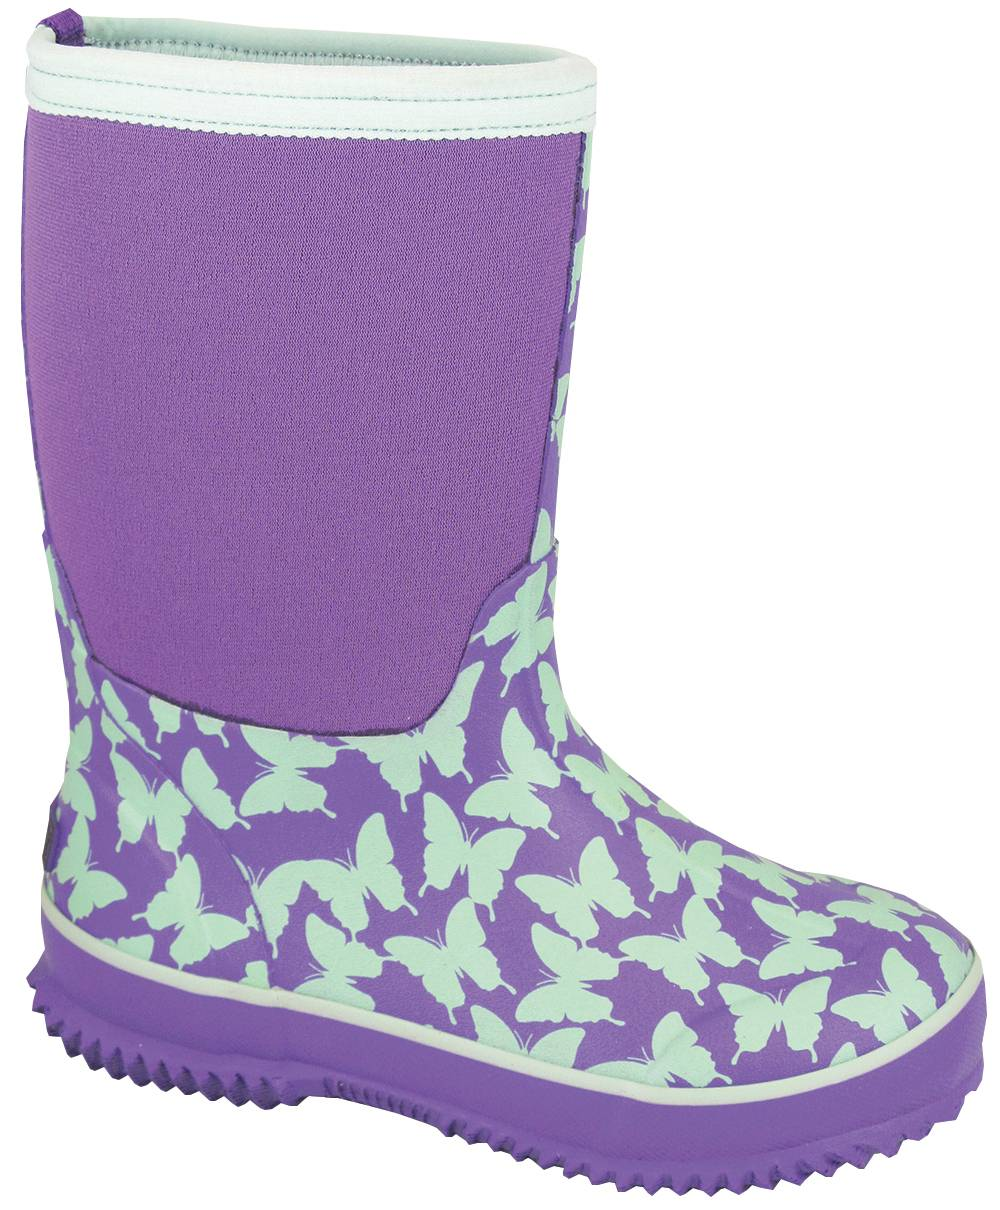 Smoky Mountain Youth Butterfly Amphibian Boots - Light Green